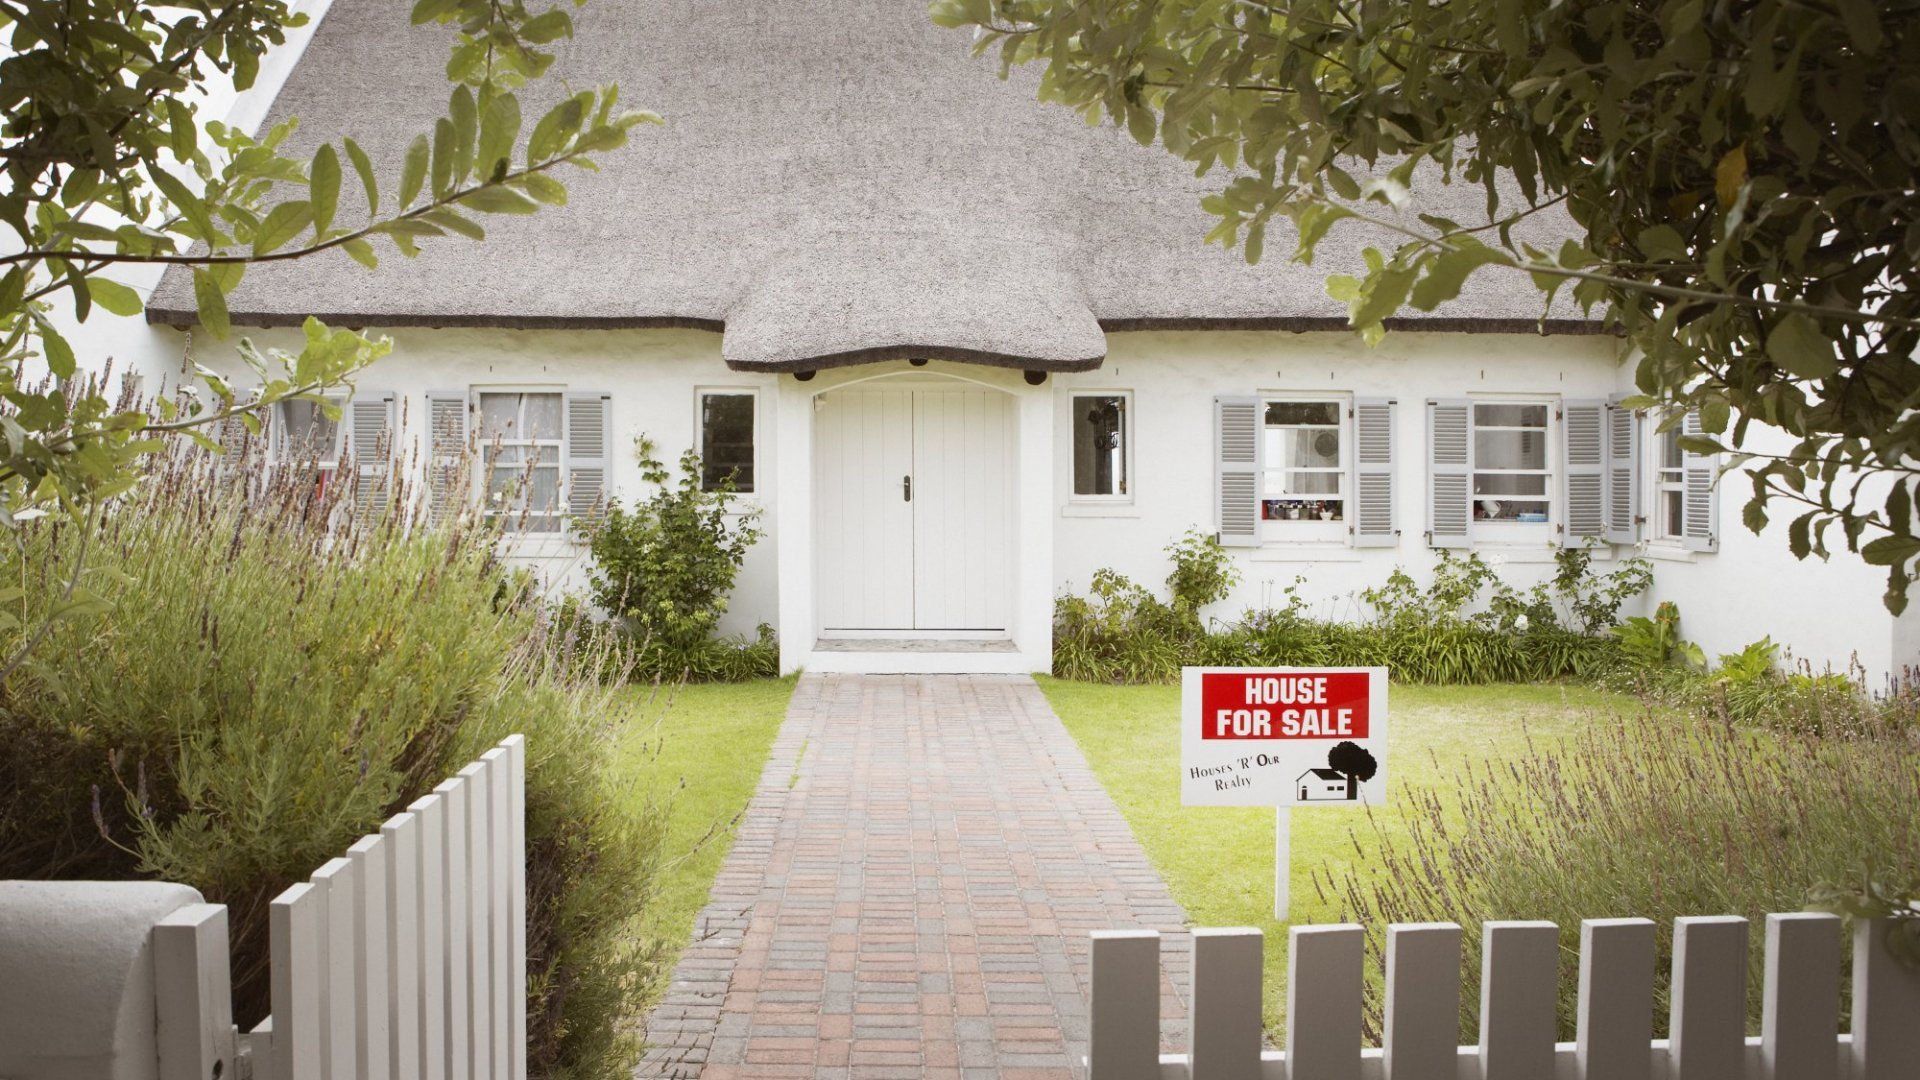 Don't Like Your New House? This Startup Will Let You Return It